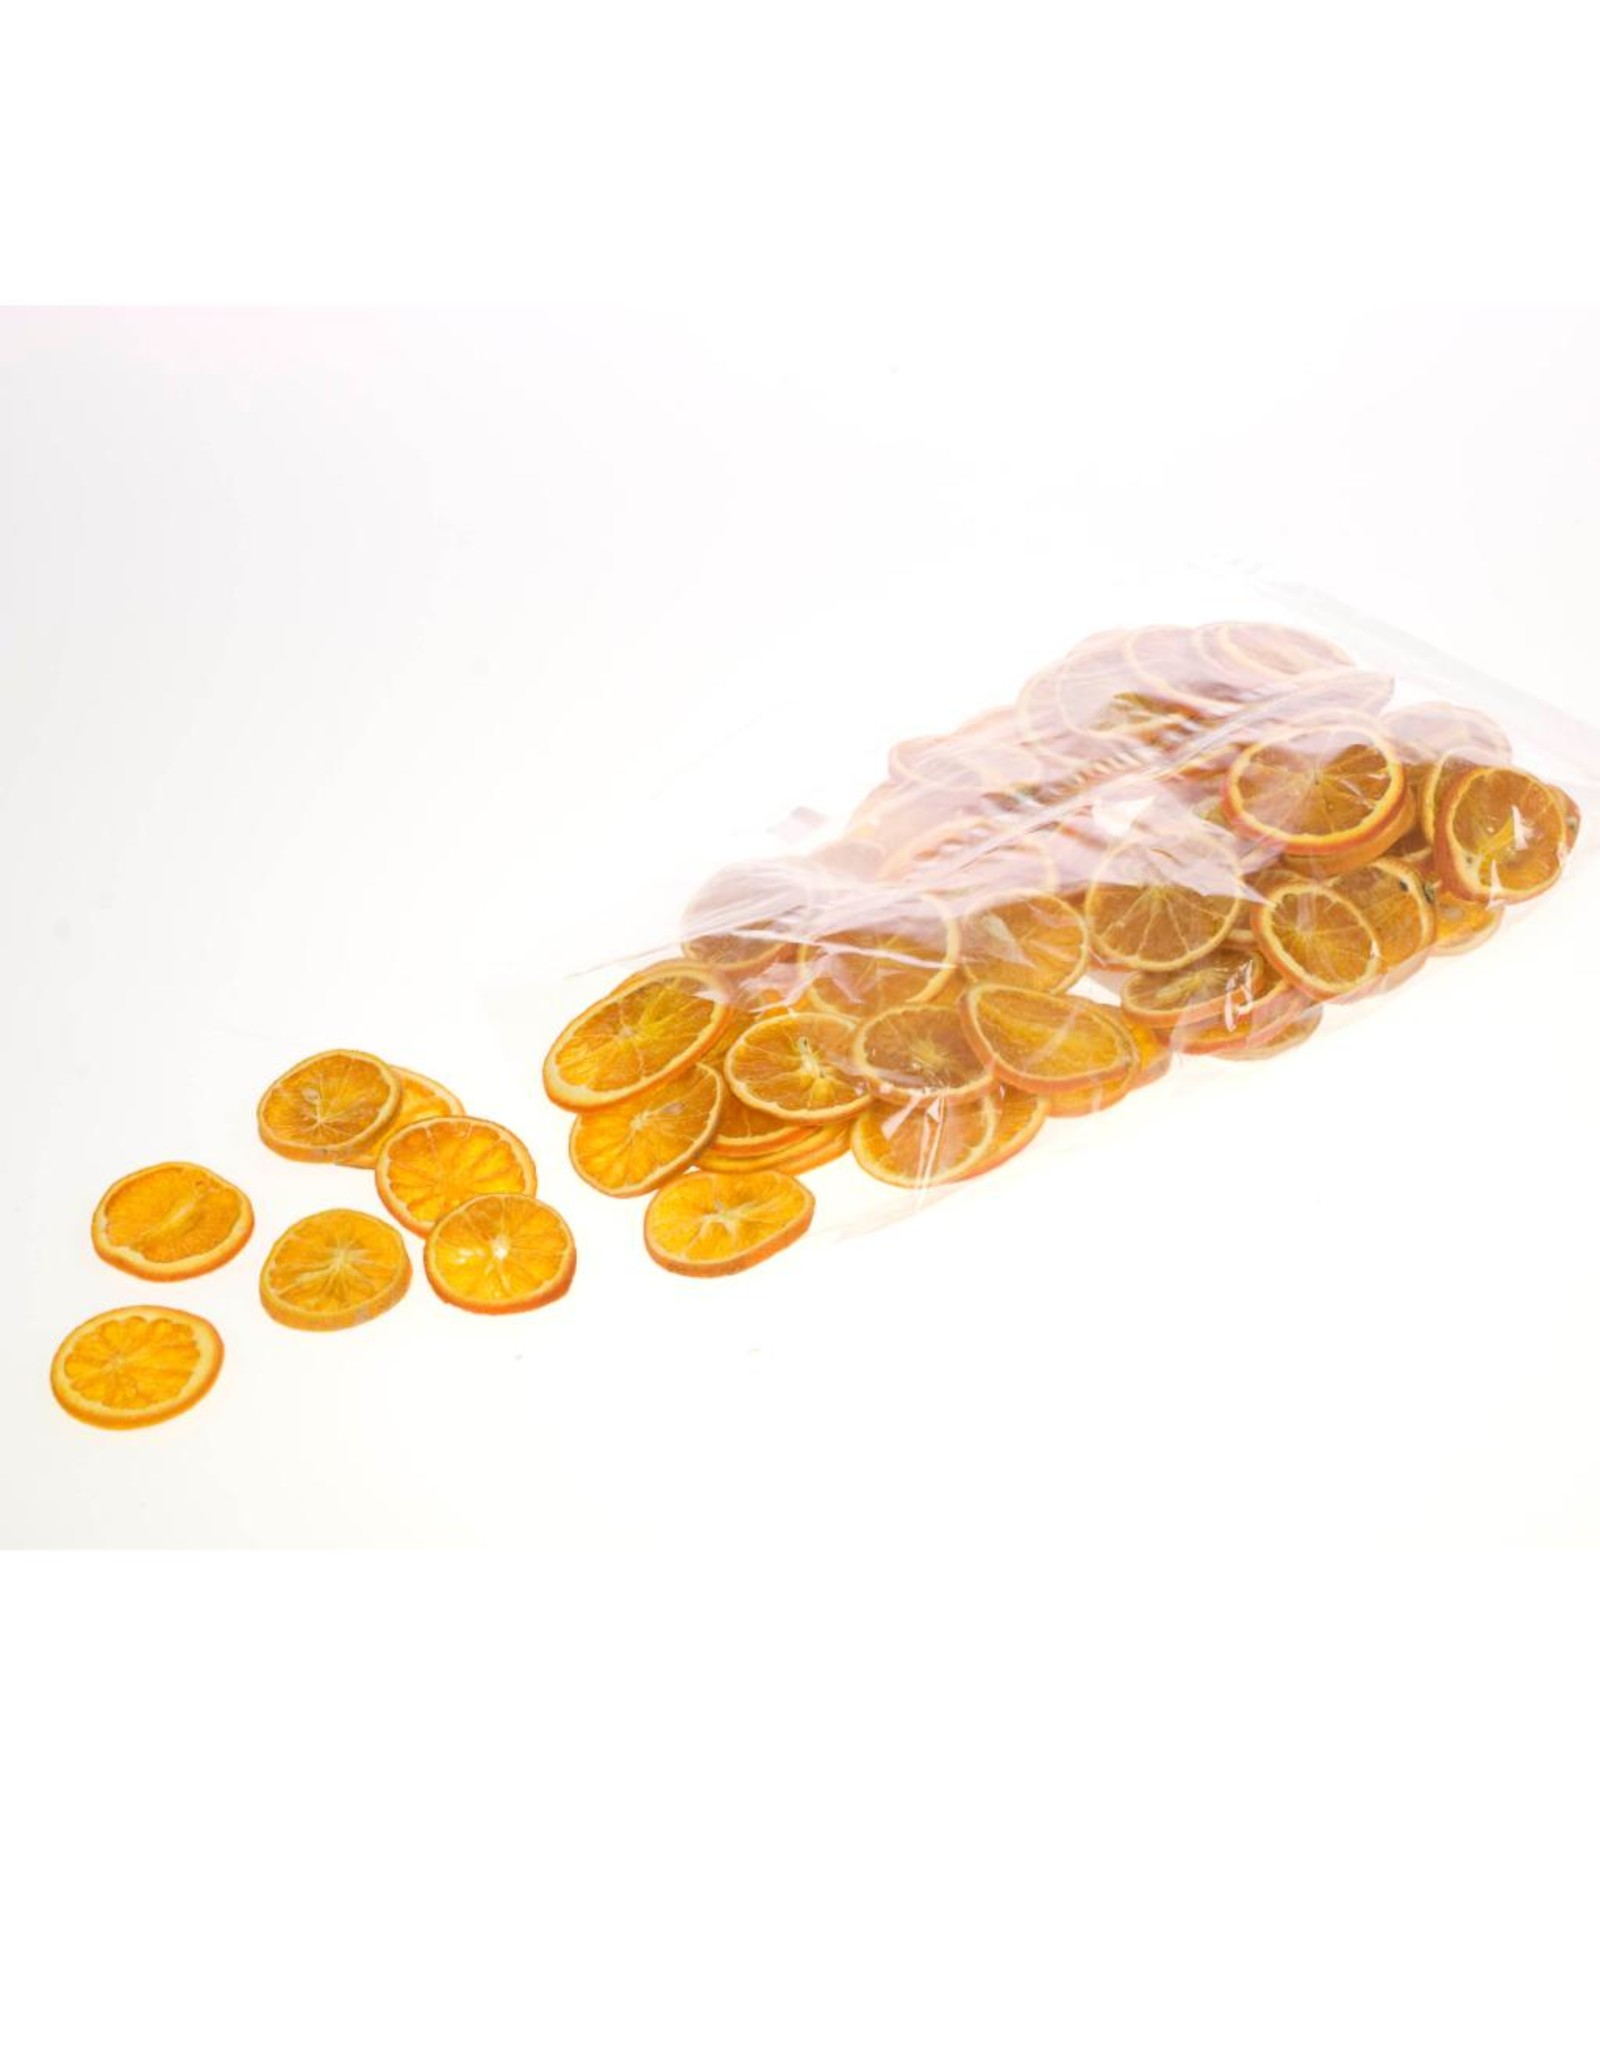 Orange slice 250gr bag natural orange x 40